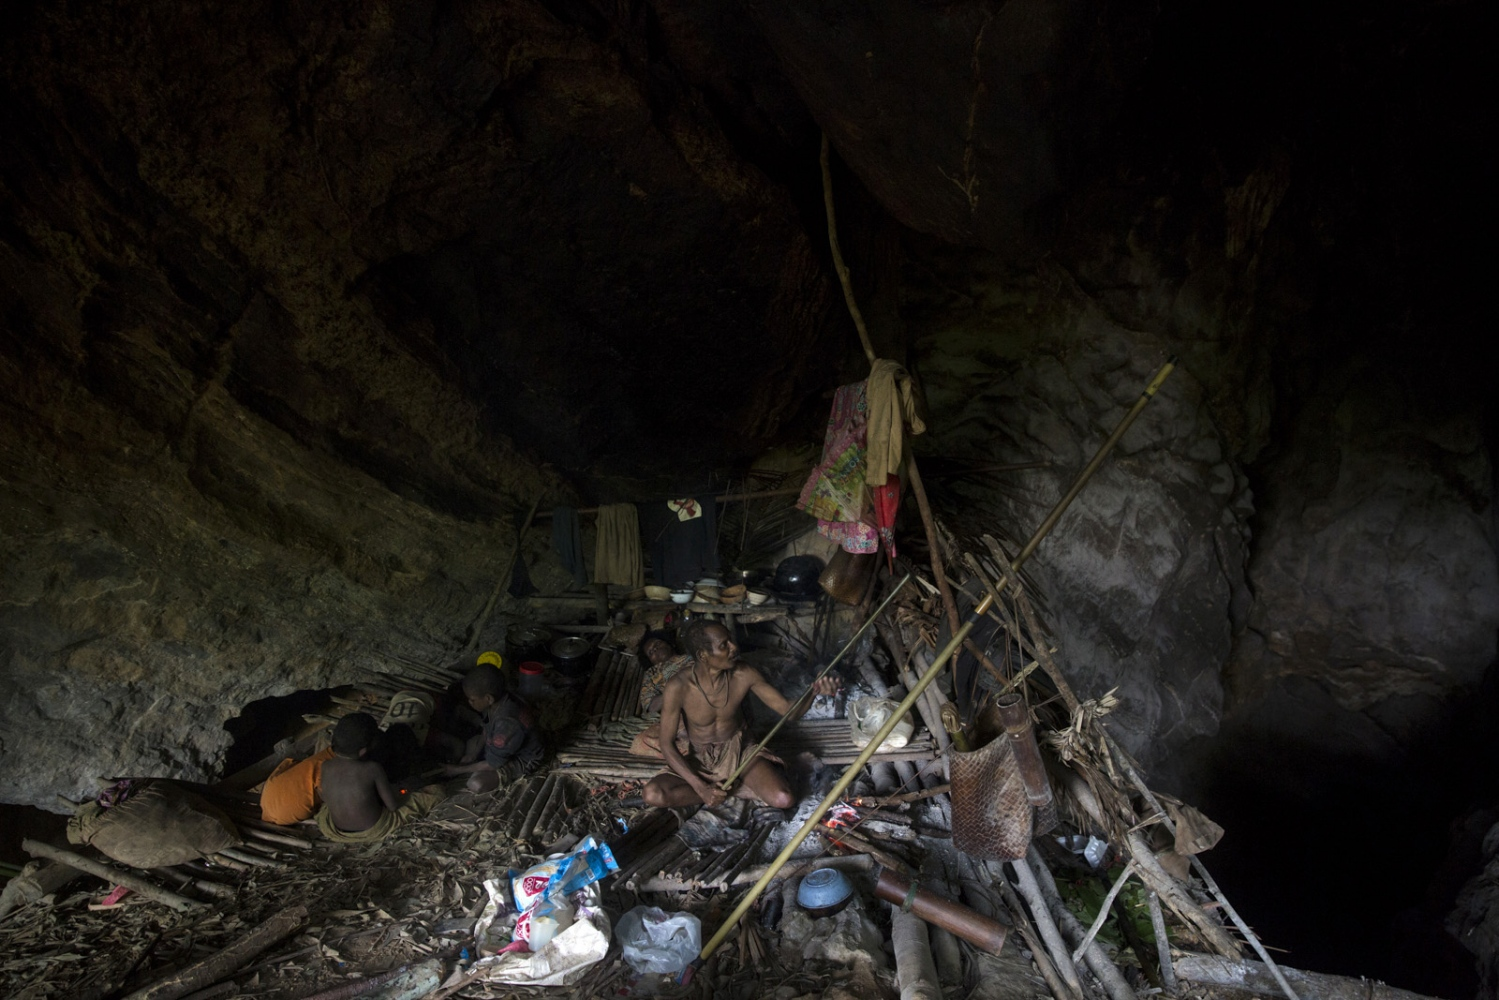 During the rainy season the Maniq search out caves, deep in the forest, where they will stay until the rains stop. Satun - July 2017